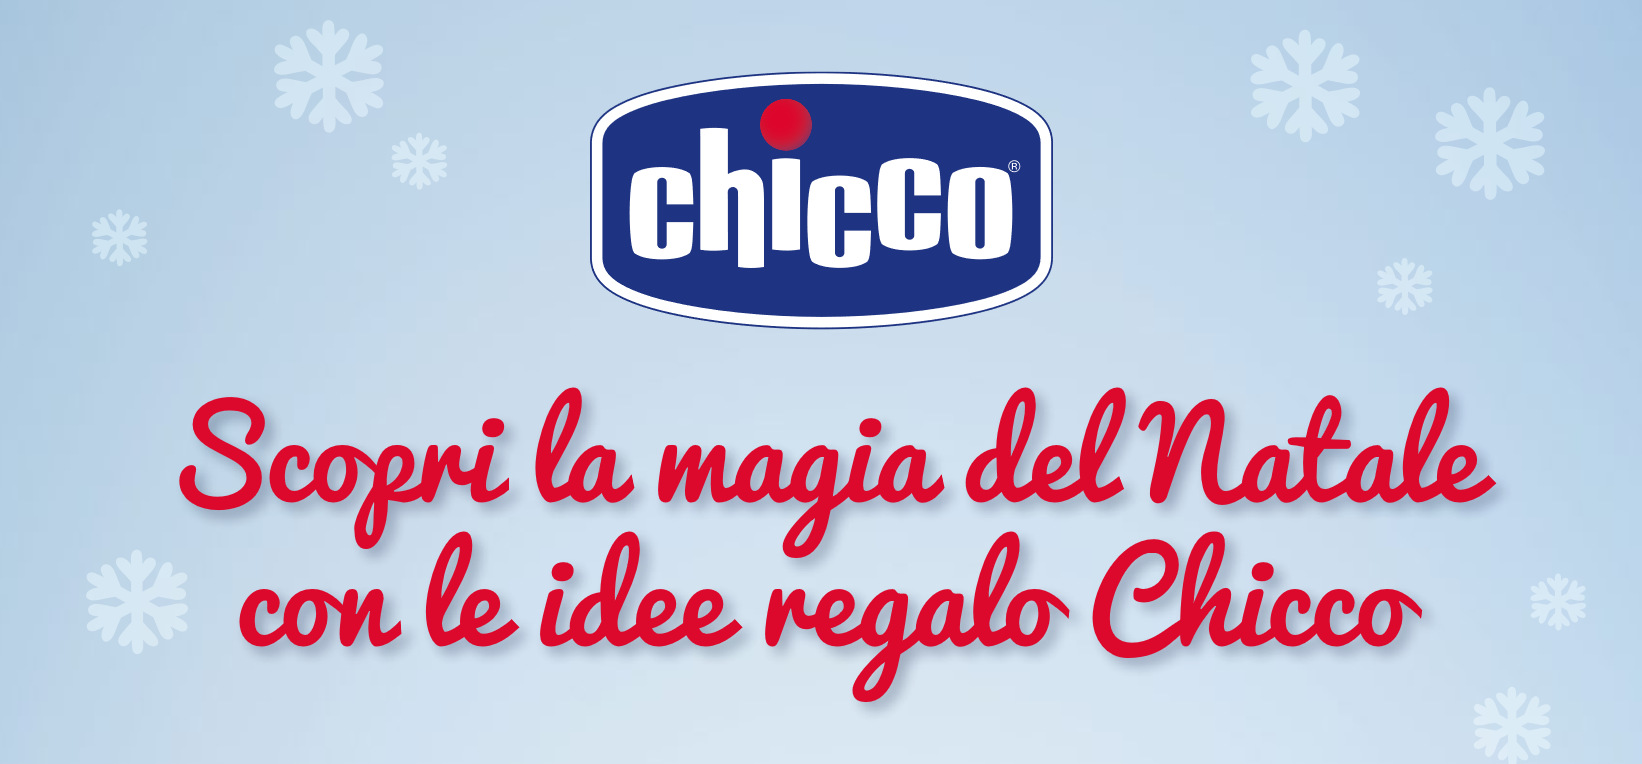 chicco-natale